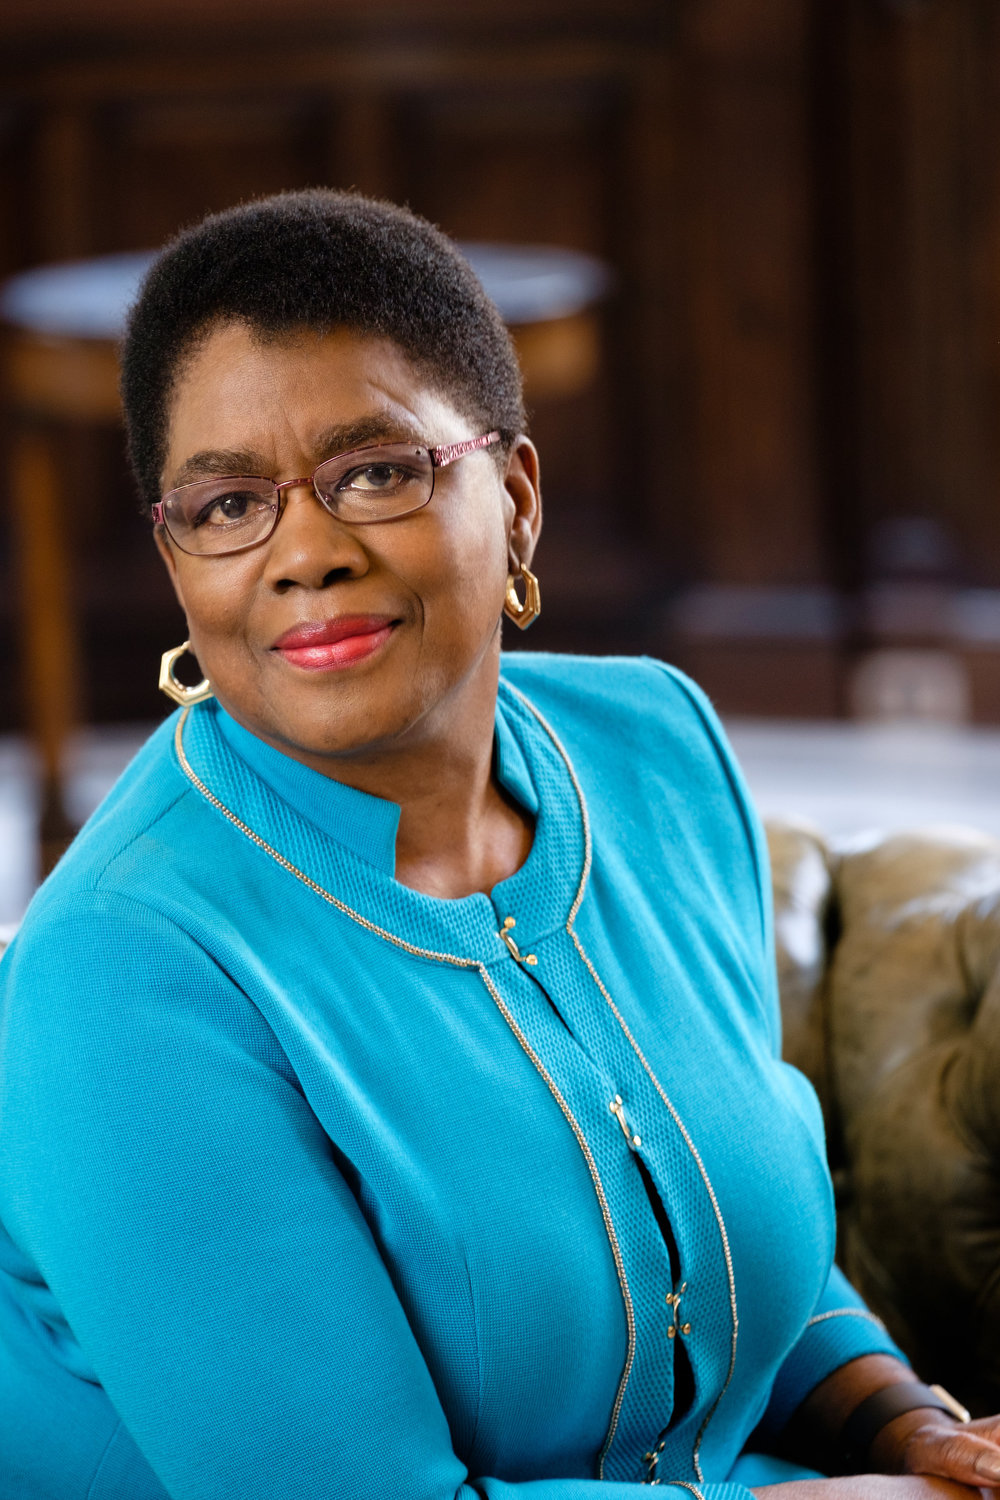 Dr. Barbara Williams-Skinner   As a spiritual advisor to members of the Congressional Black Caucus; an advocate for the underserved; and a mentor to pioneers in business, government, academia and media, Dr. Barbara Williams-Skinner has impacted the lives of numerous influential leaders. She's bringing her wisdom to Remade by Grace 2019, offering legendary lessons to help Grace Girls step into formal and informal leadership roles that will change the world.